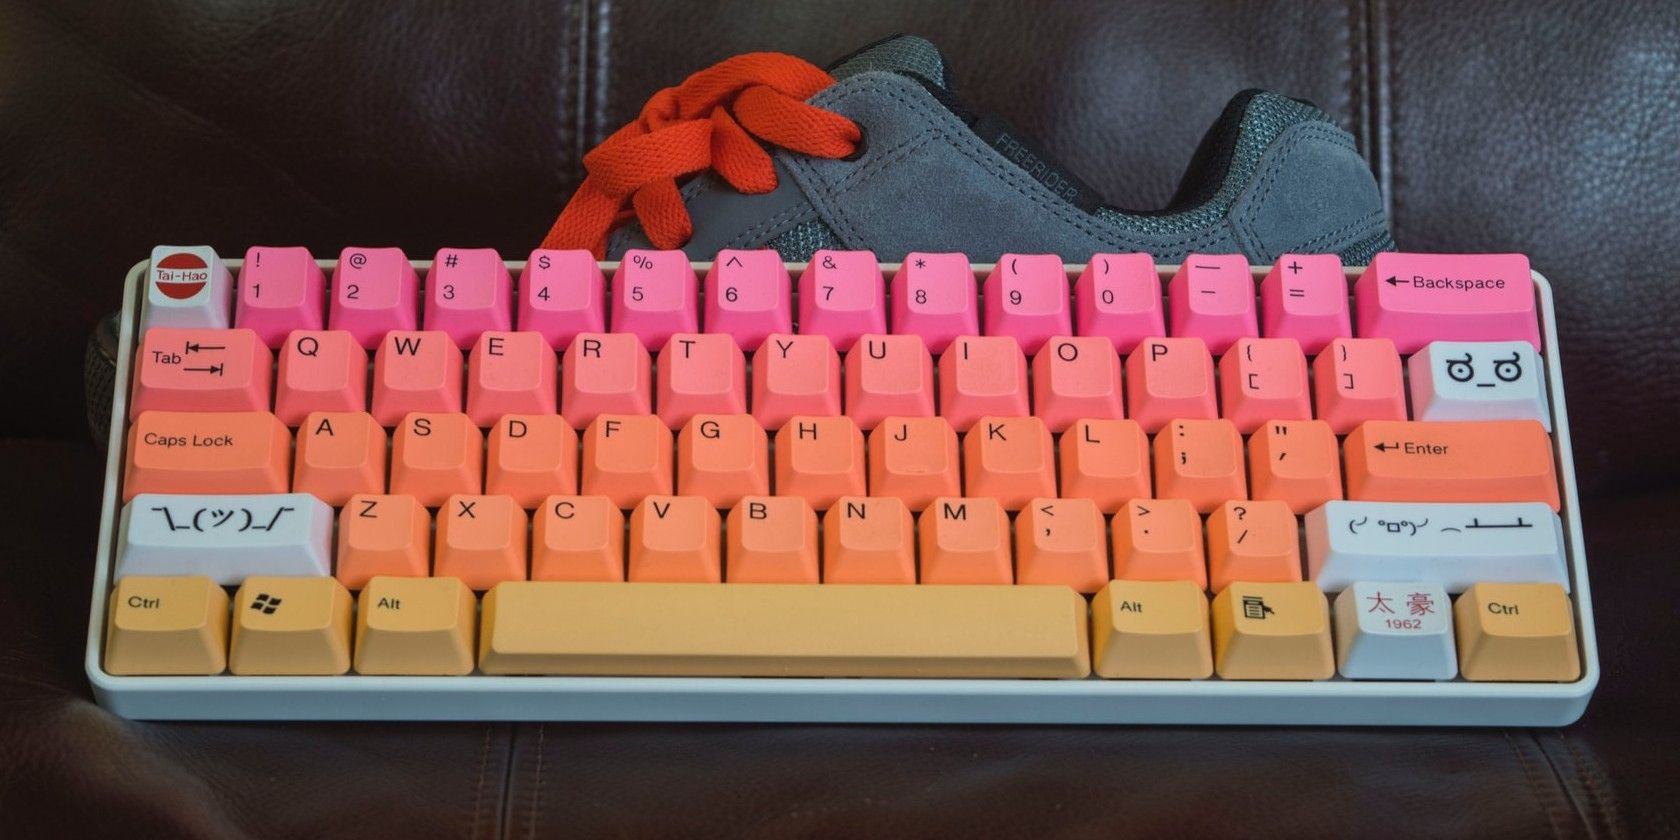 The Best 60% Keyboards for Gamers